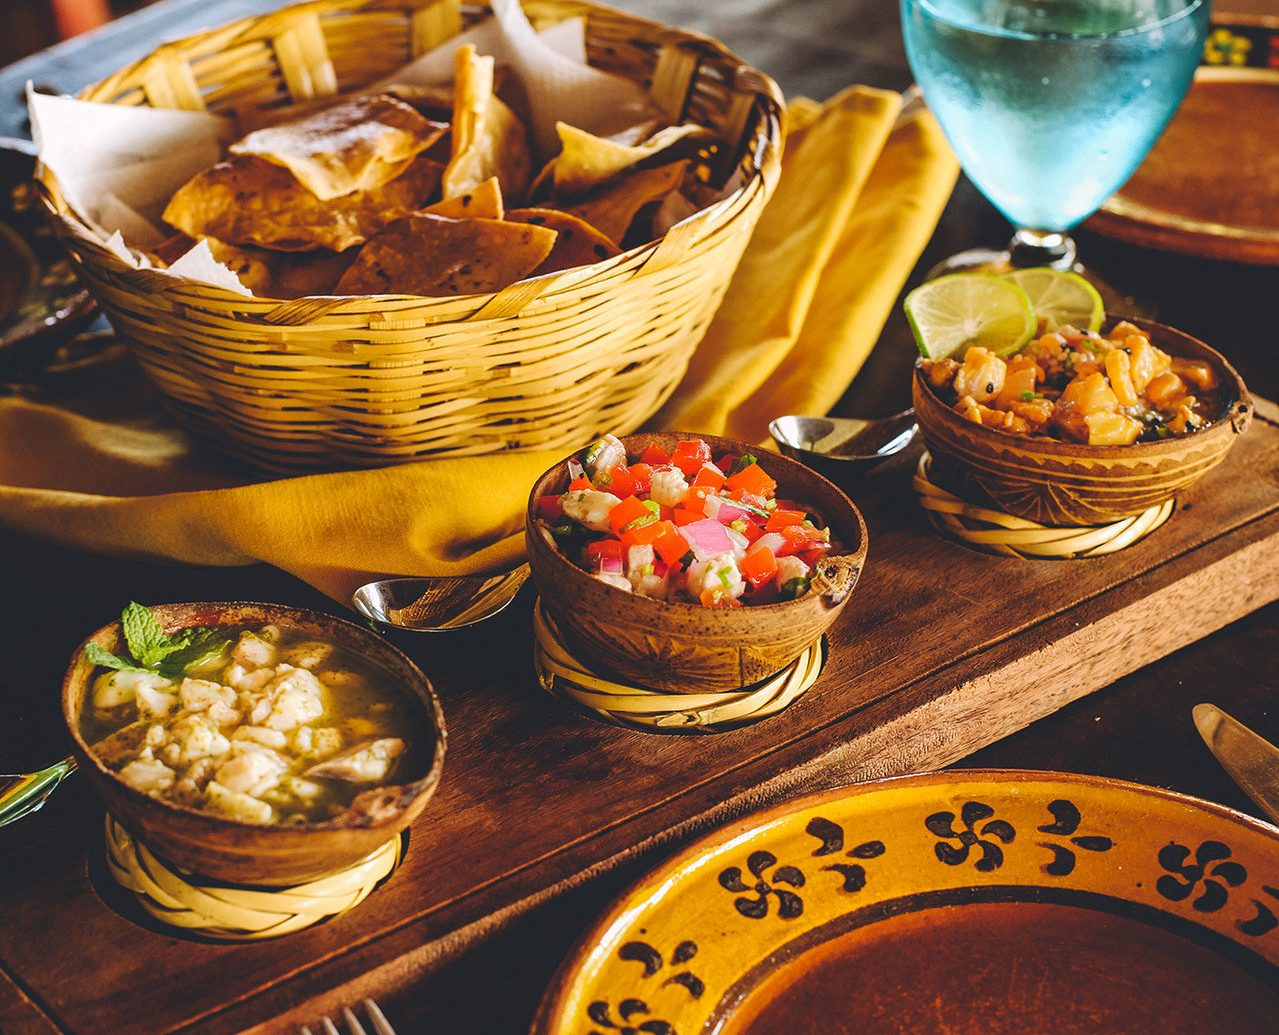 Cultural culture Dining Eat food Food + Drink mexican traditional Travel Tips table plate indoor meal dish breakfast dinner sense dessert baking Drink several